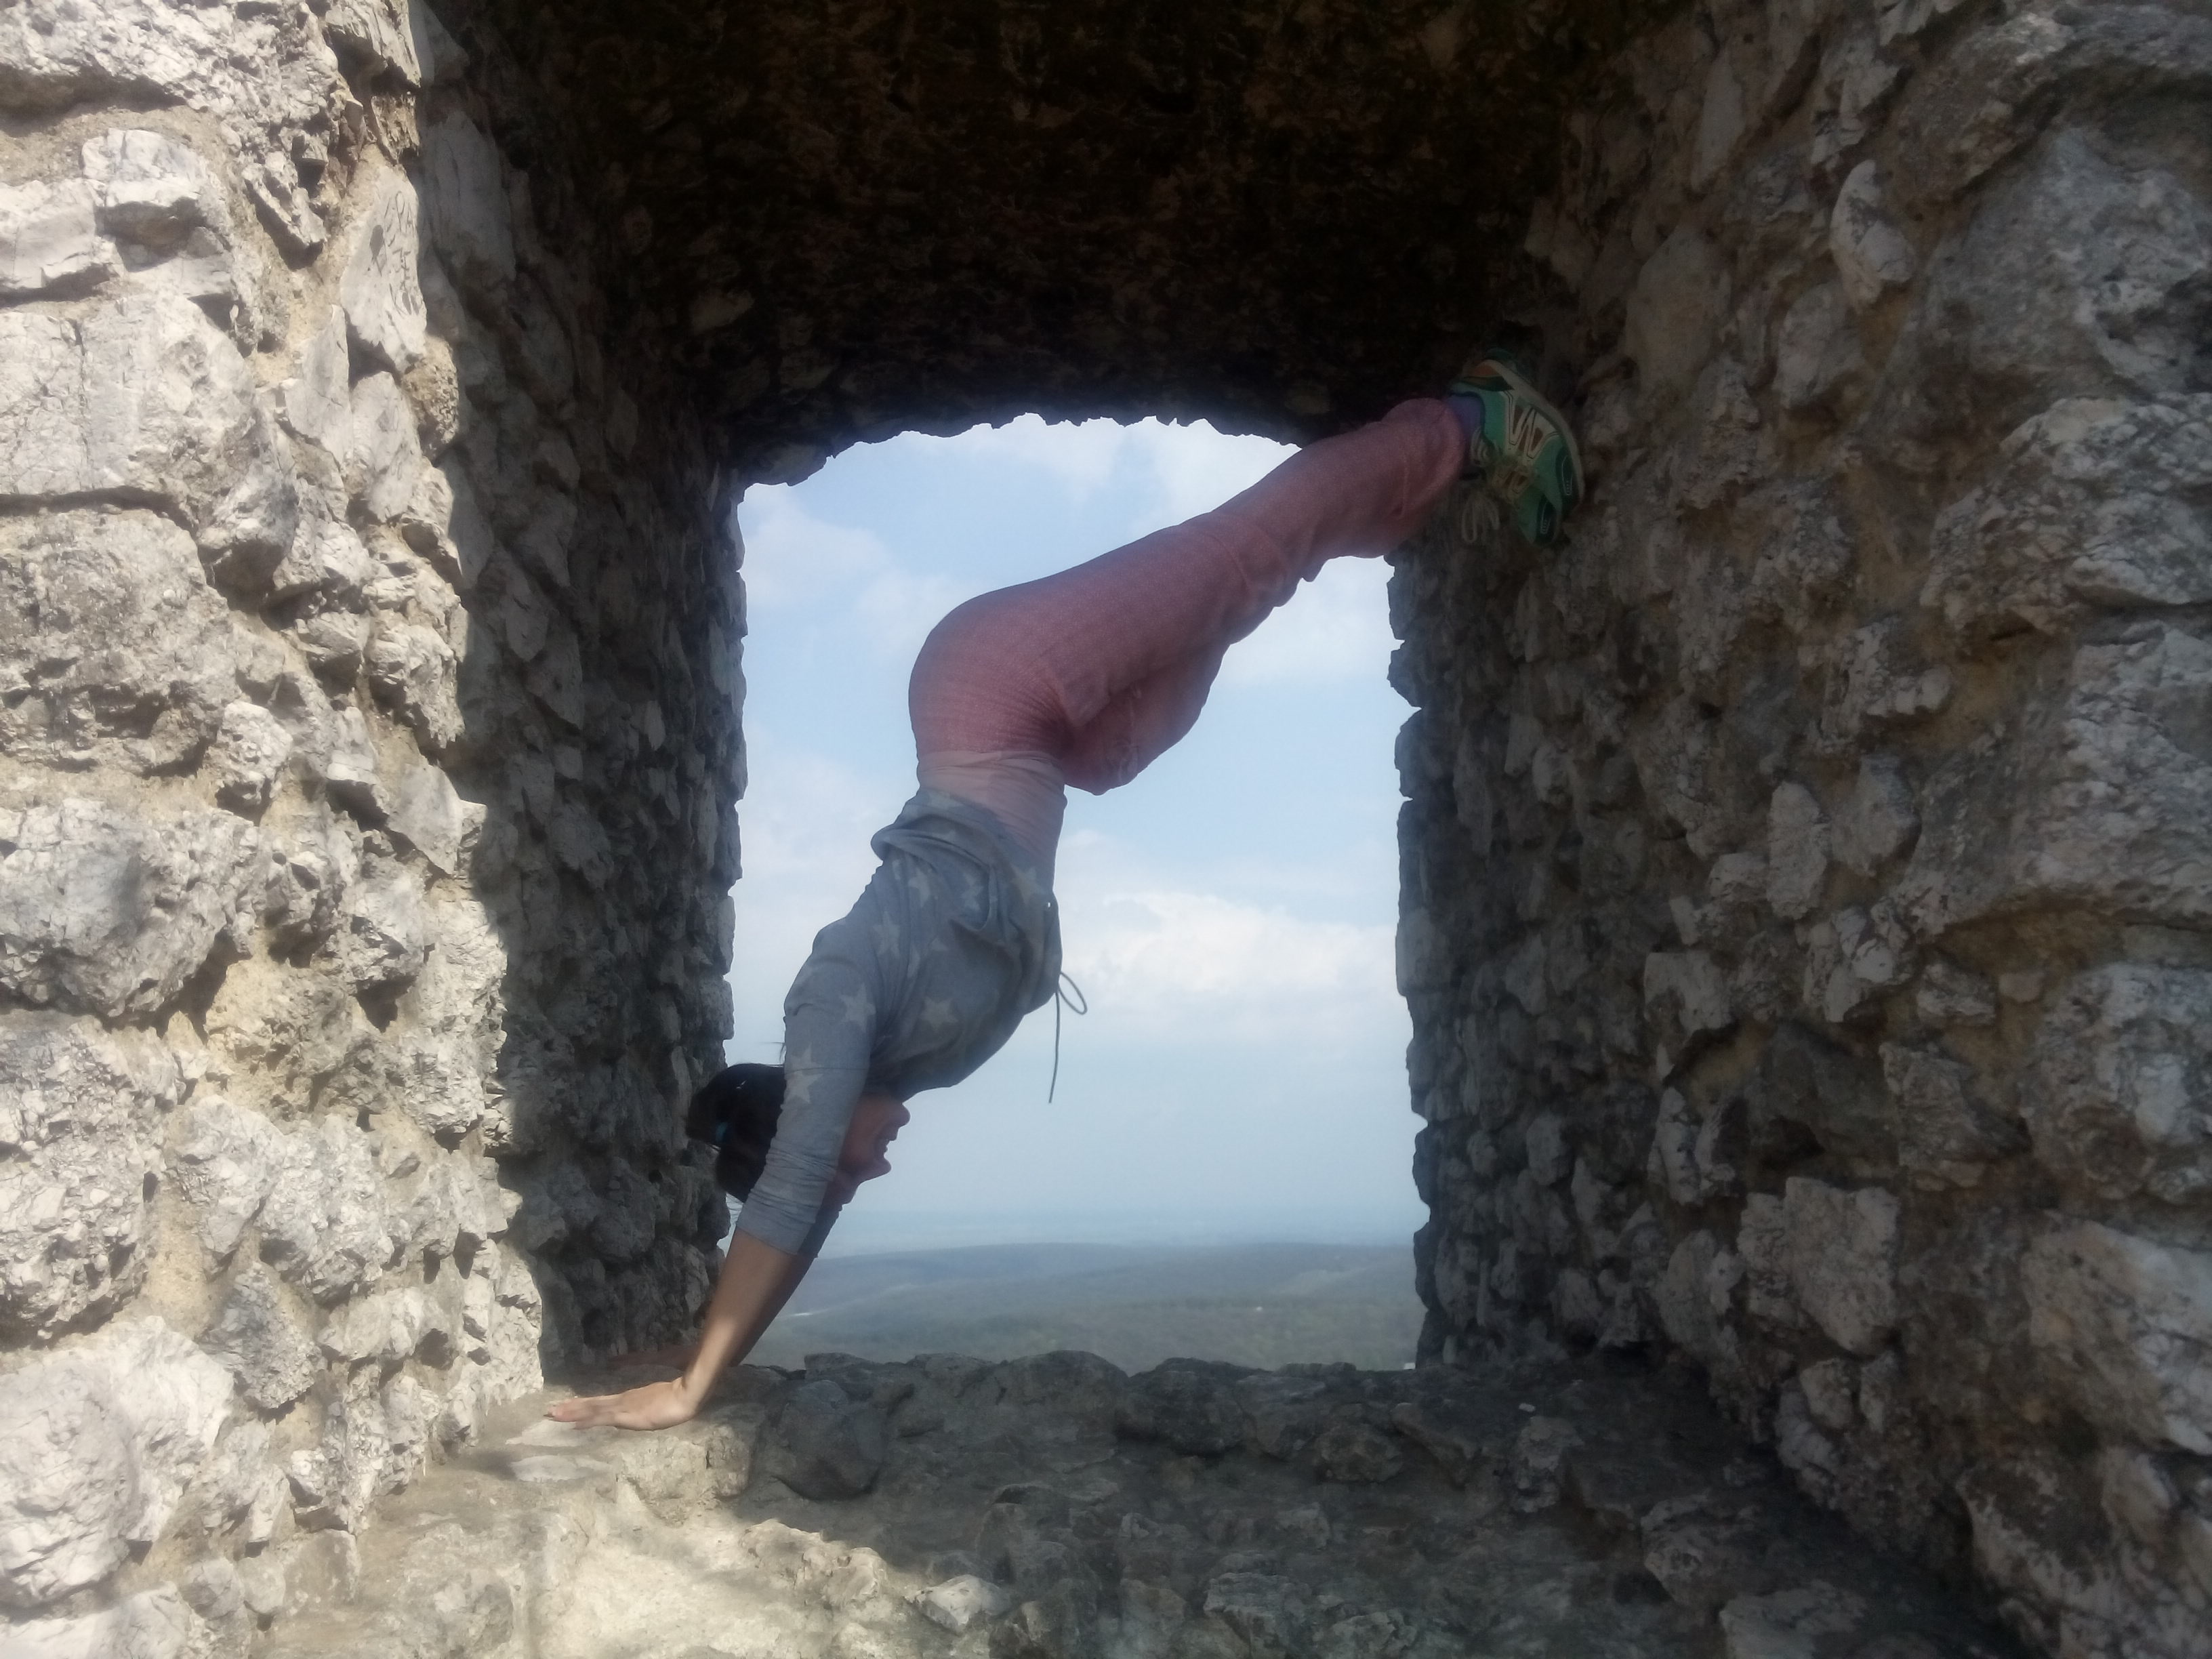 A woman in a blue shirt and pink tights wedged upside down in a stone window